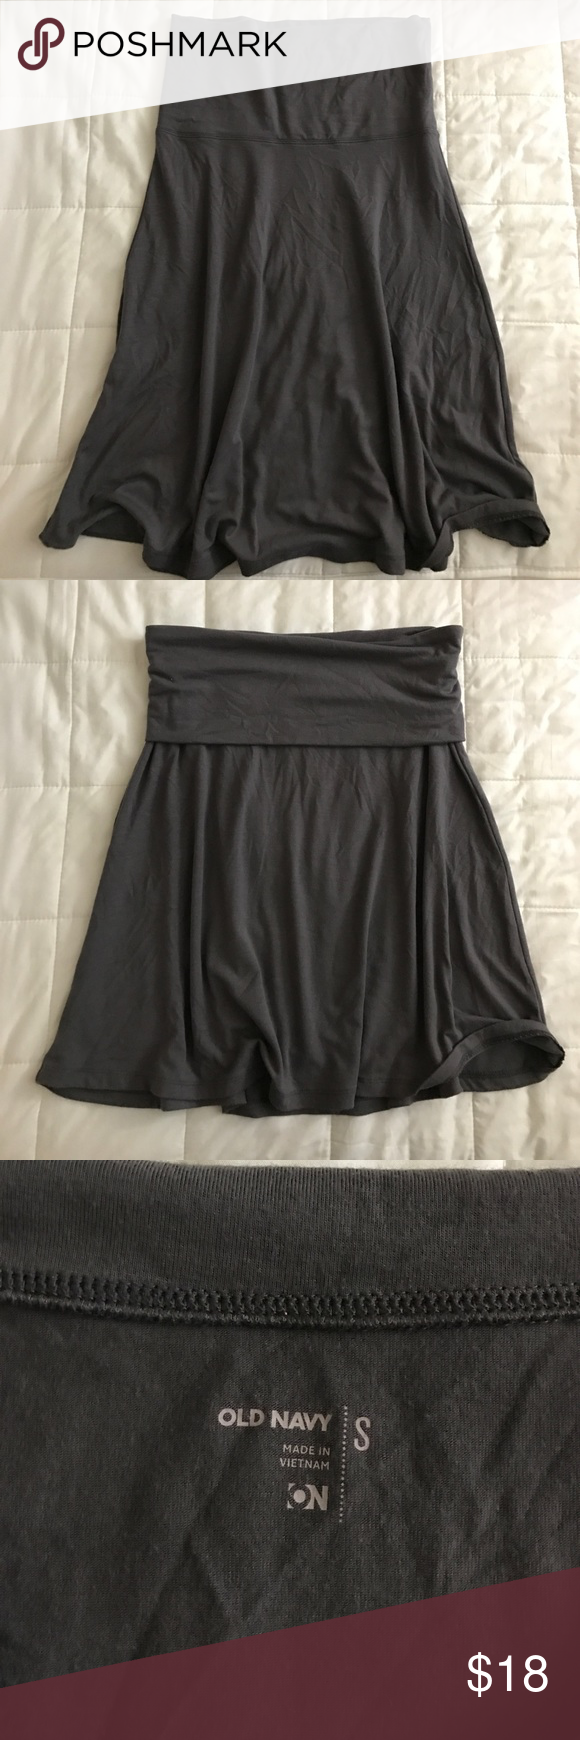 ON S fold-over flowy yoga skirt This is an Old Navy size S fold-over flowy yoga skirt in a dark gray color. It can be worn regular or folded over. It's super flowy and comfortable. Feel free to make an offer 😊 Old Navy Skirts